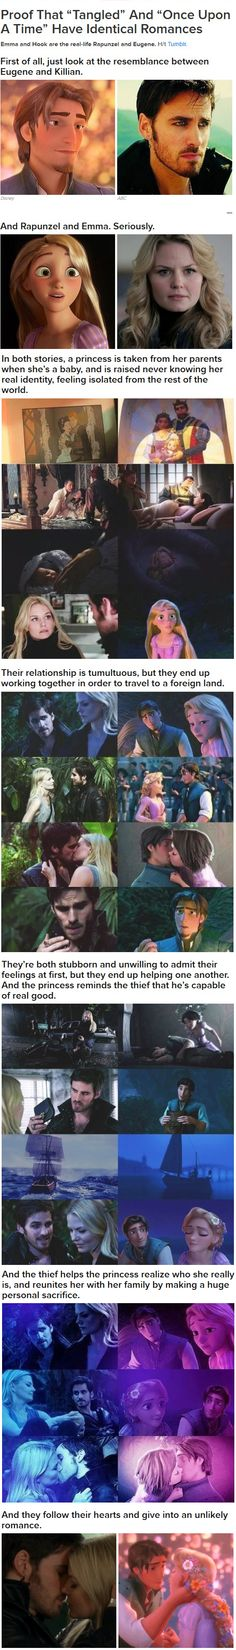 "Proof That ""Tangled"" And ""Once Upon A Time"" Have Identical Romances"